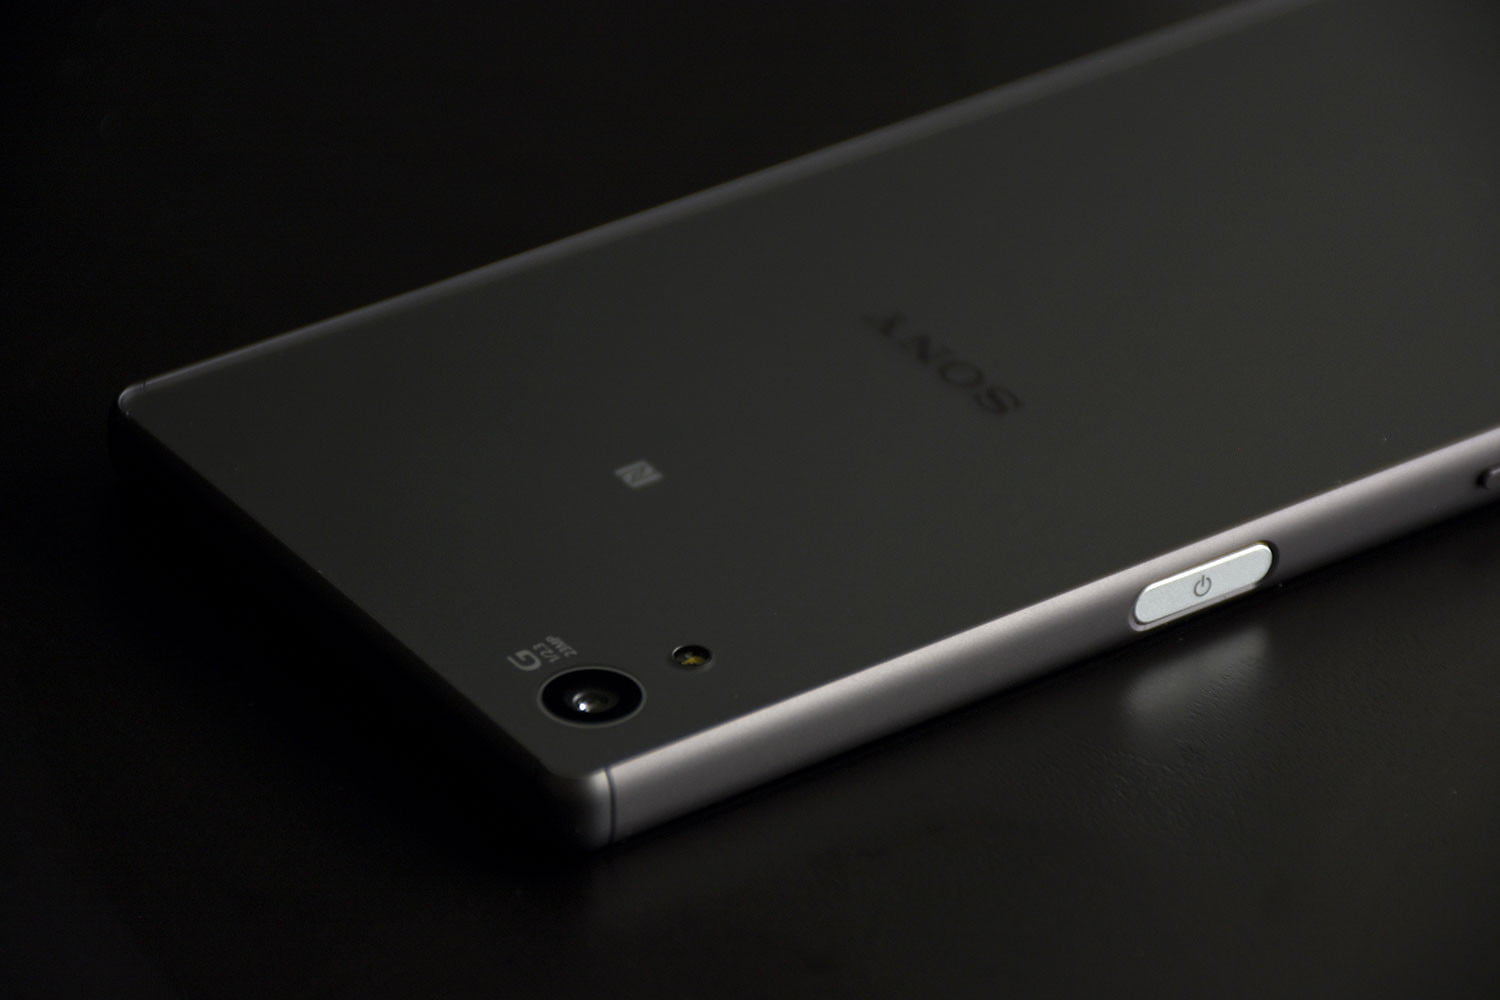 Sony Xperia Z5 | Full Review, Specs, Price, and More ...